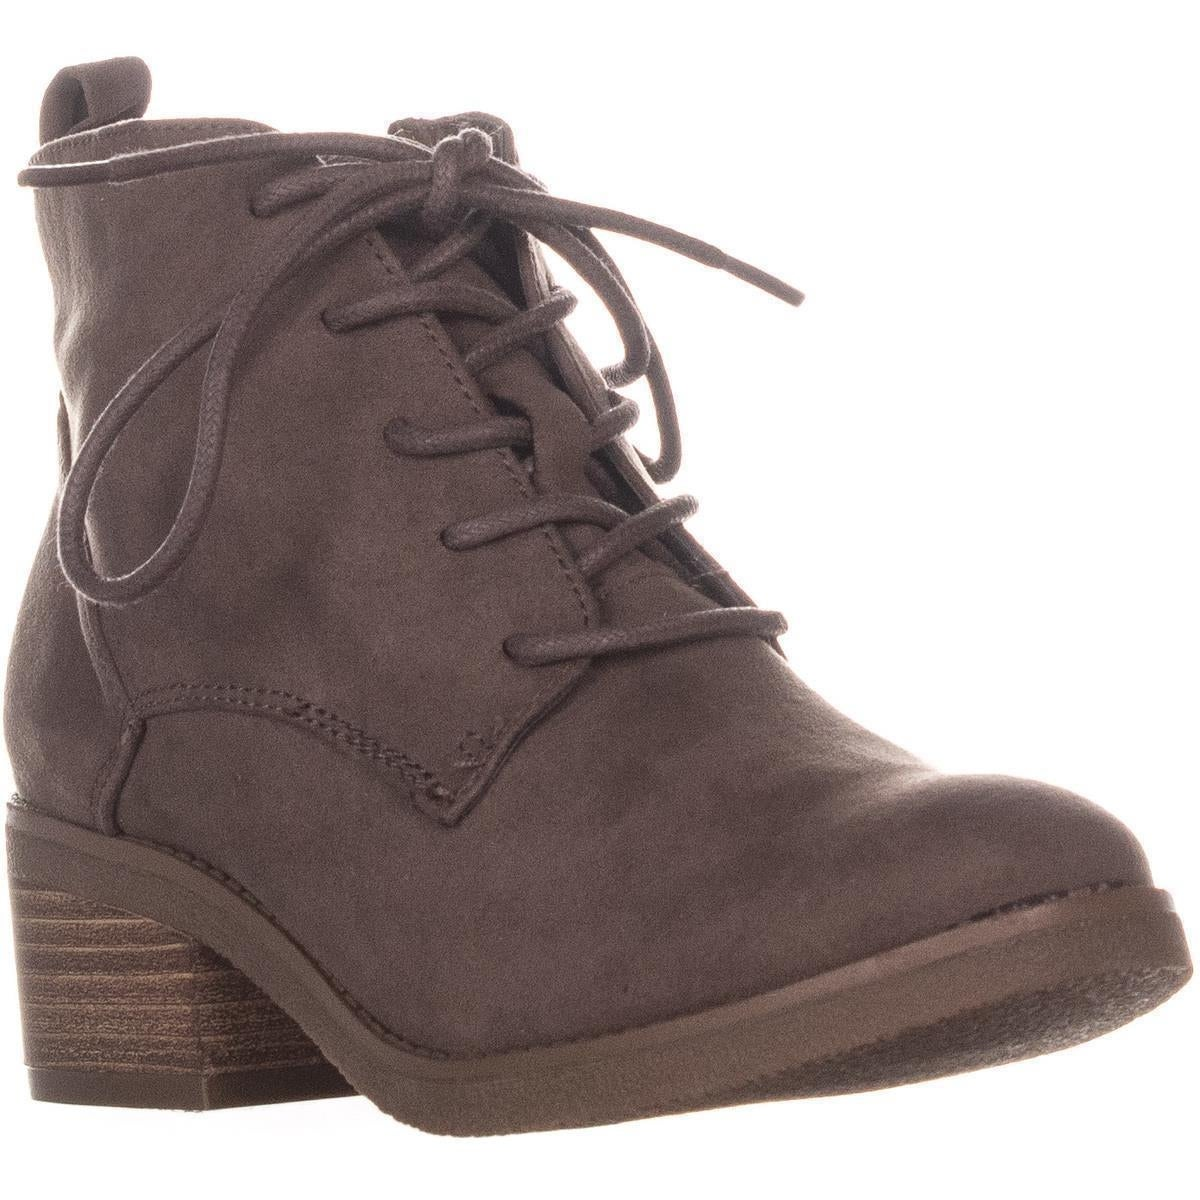 743e1080c5264 Shop SC35 Rizio Block Heel Lace Up Ankle Boots, Taupe - Free ...